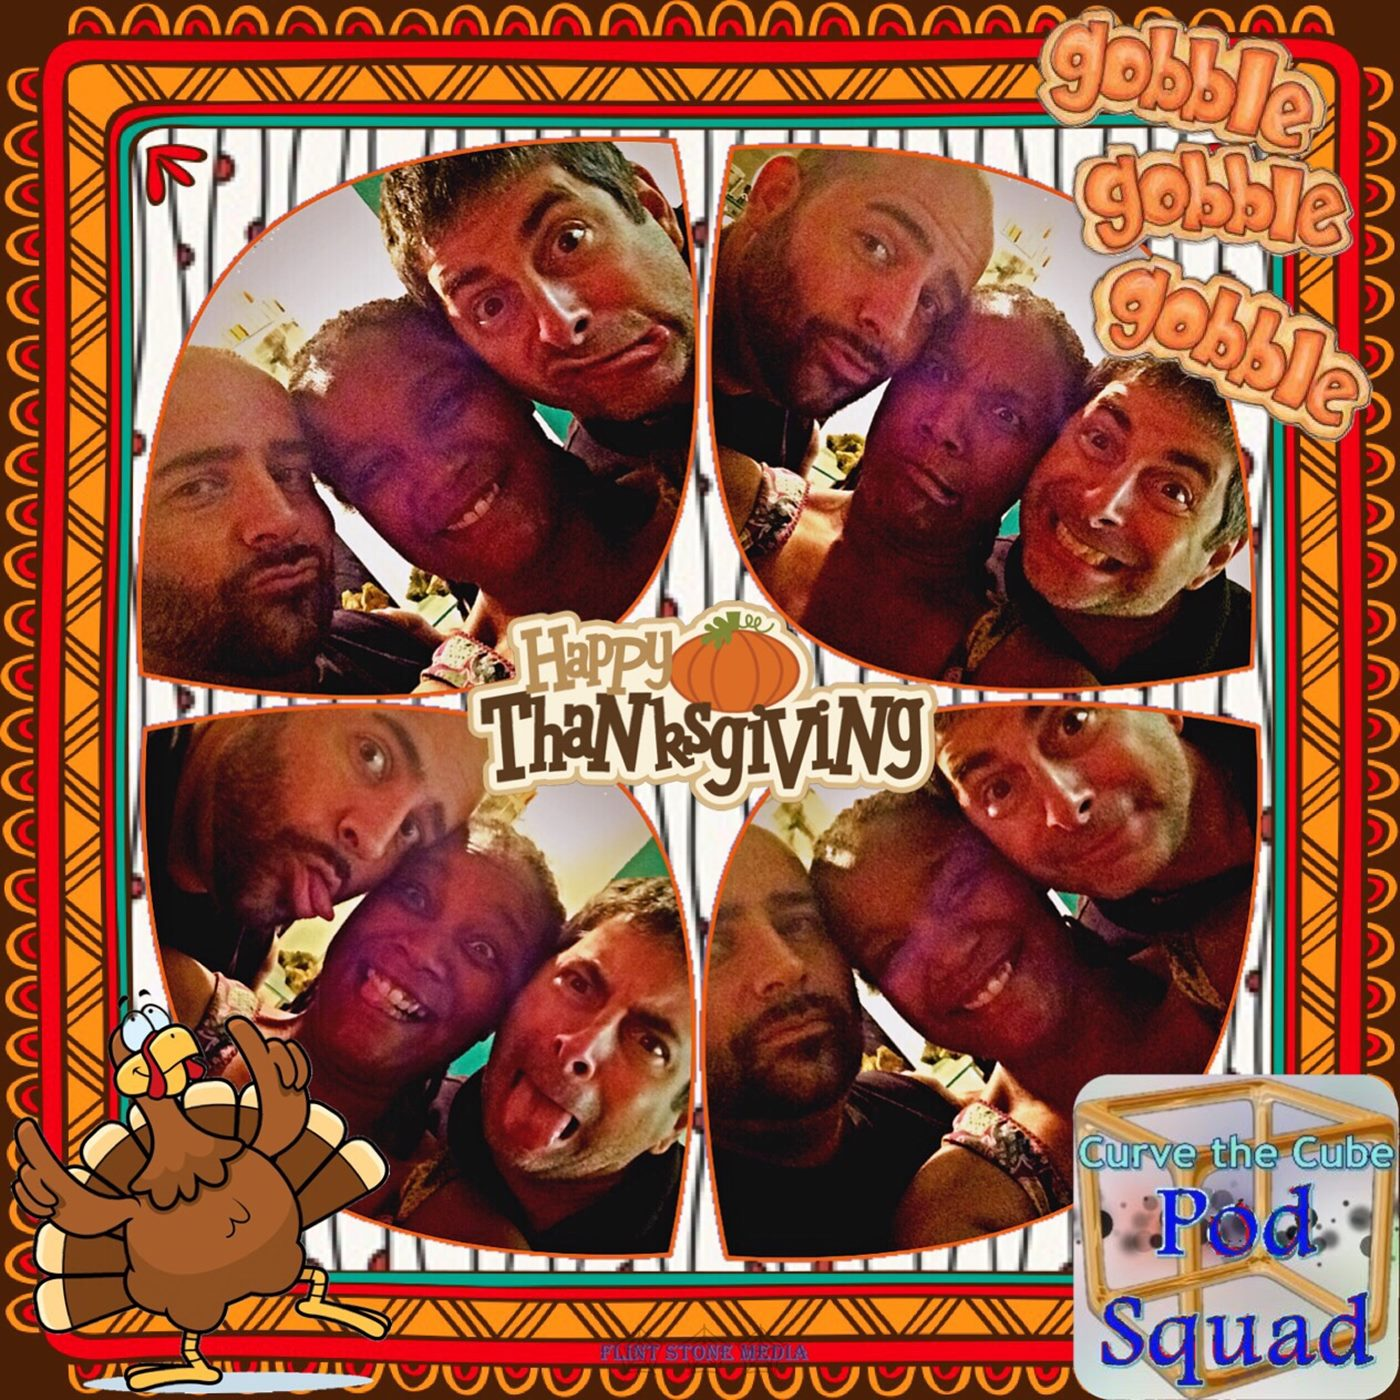 #51 – Pod Squad – Thanksgiving - 2015-11-10